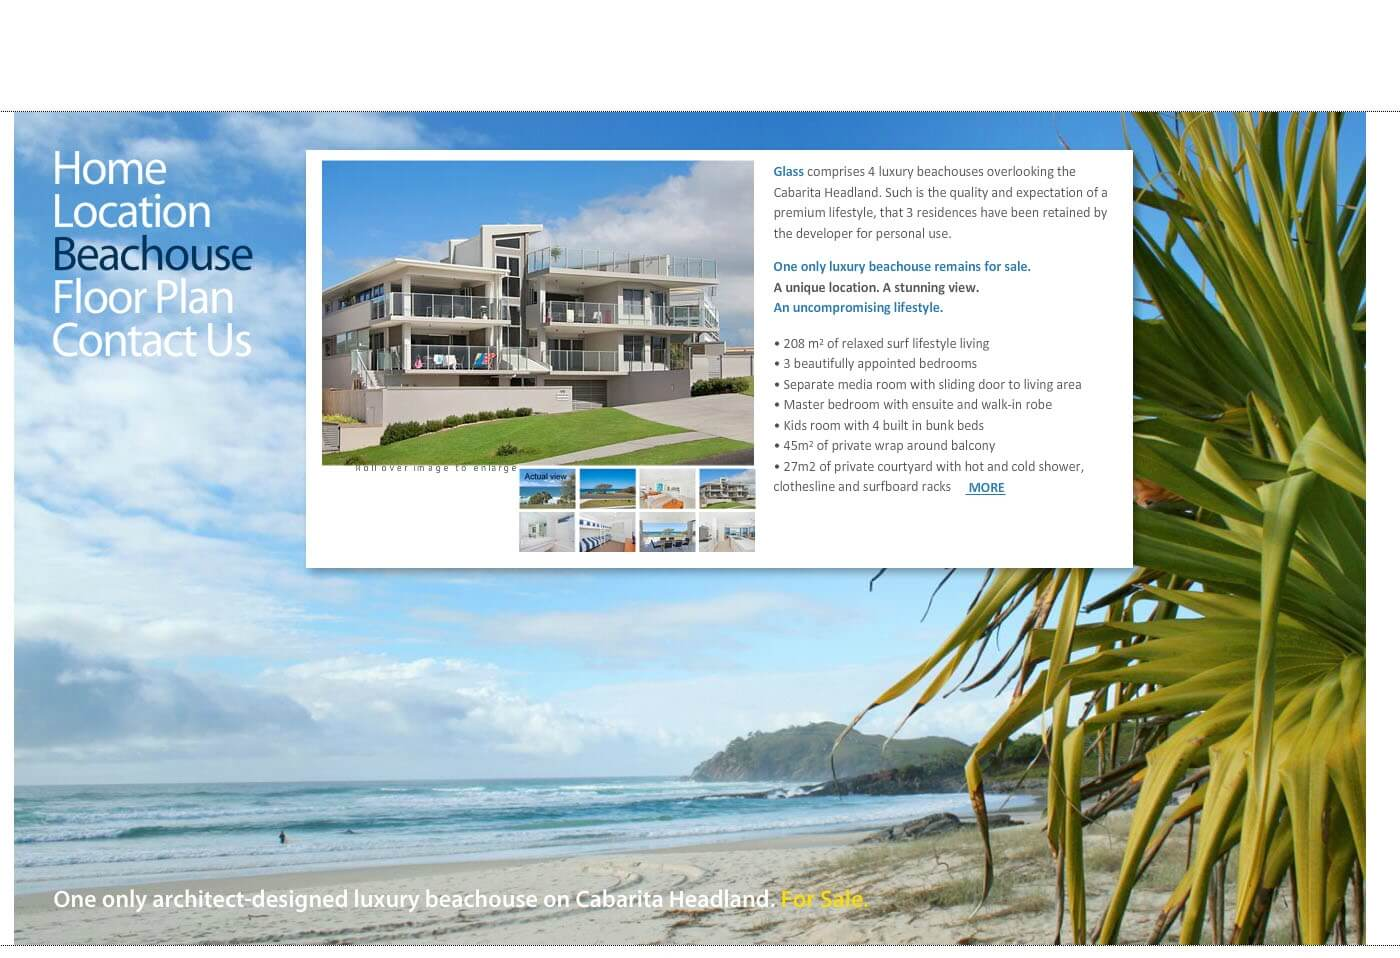 Able Video Glass Cabarita Headland Website 02